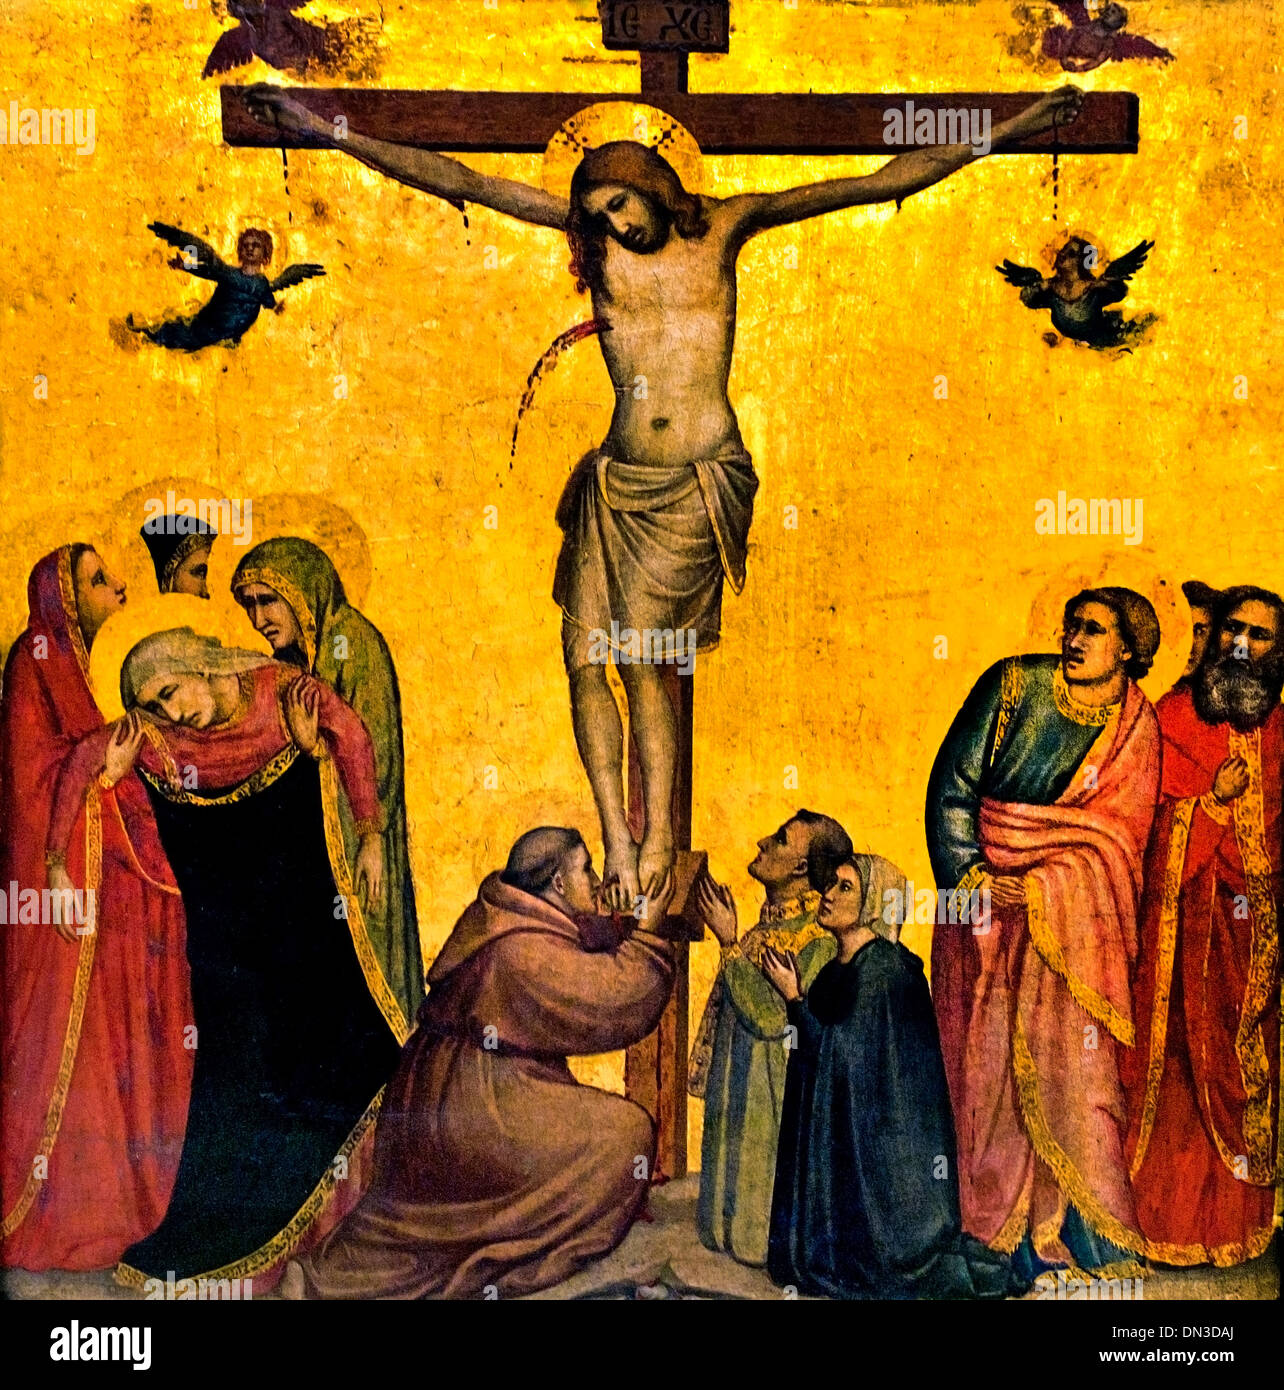 Christus am Kreuz - Christ on the Cross 1266 - 1337  Giotto di Bondone Italy Italian - Stock Image